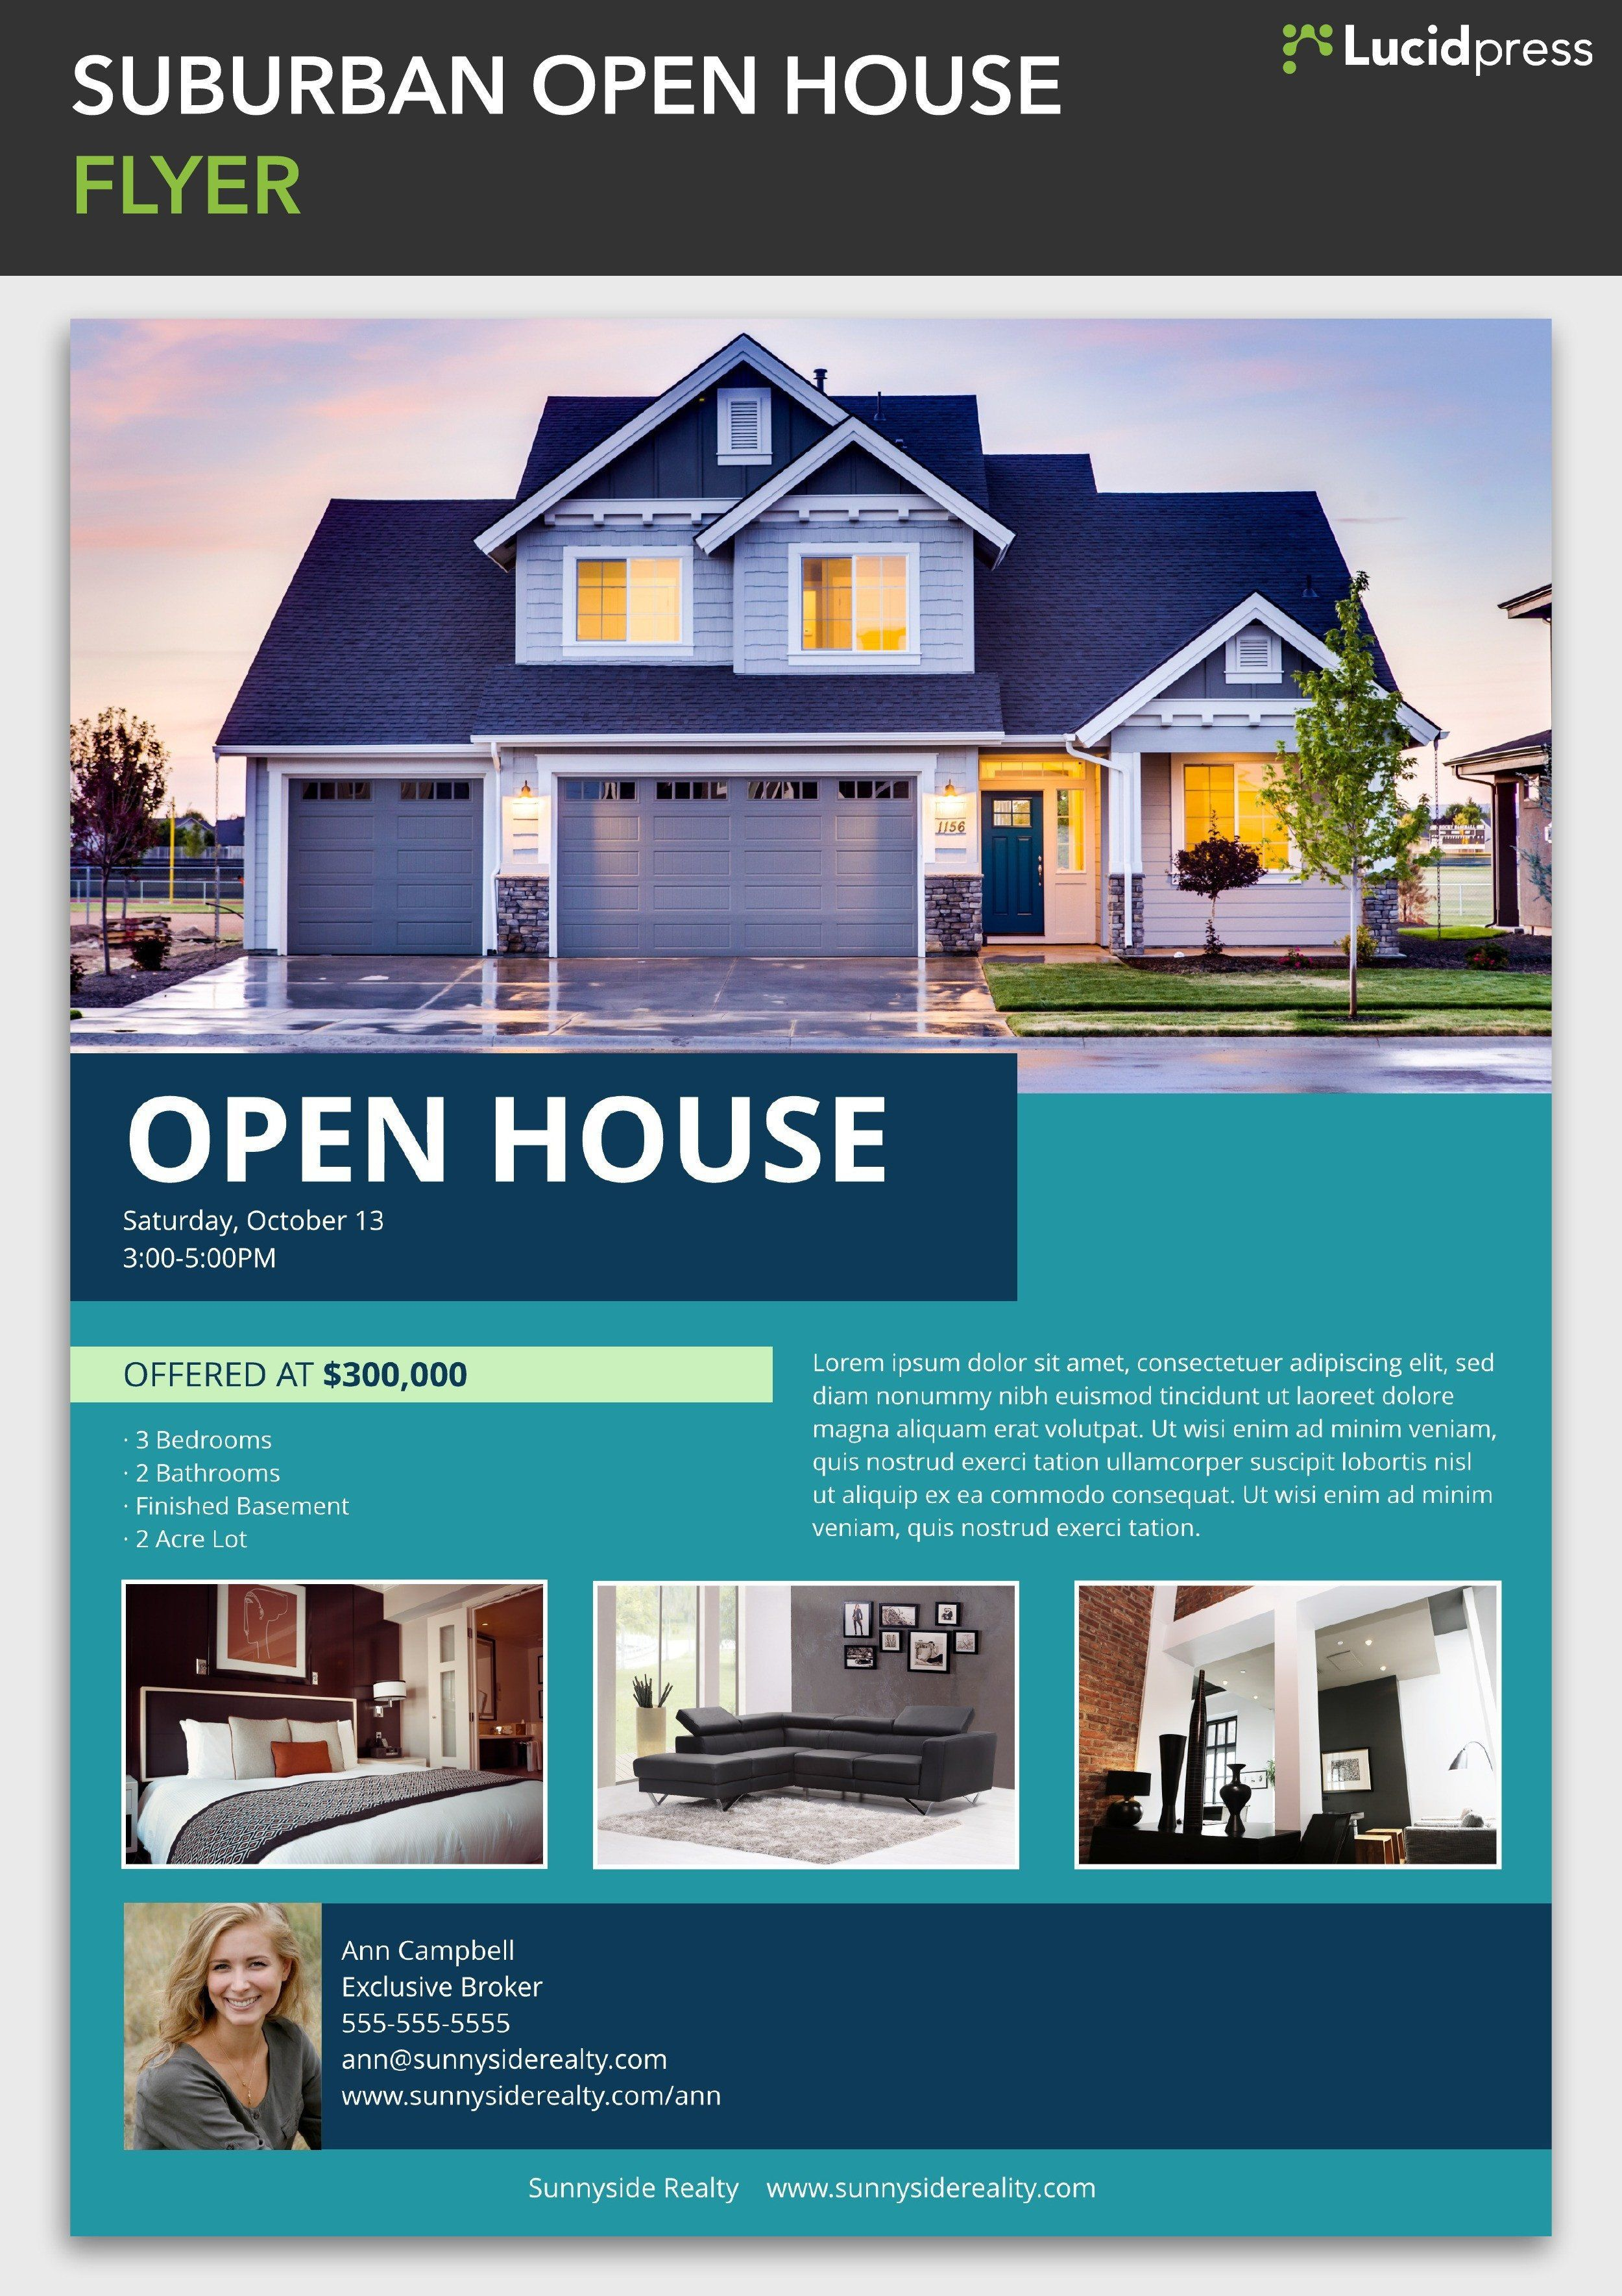 002 Magnificent Open House Flyer Template High Def  Templates Word Free Microsoft Real EstateFull